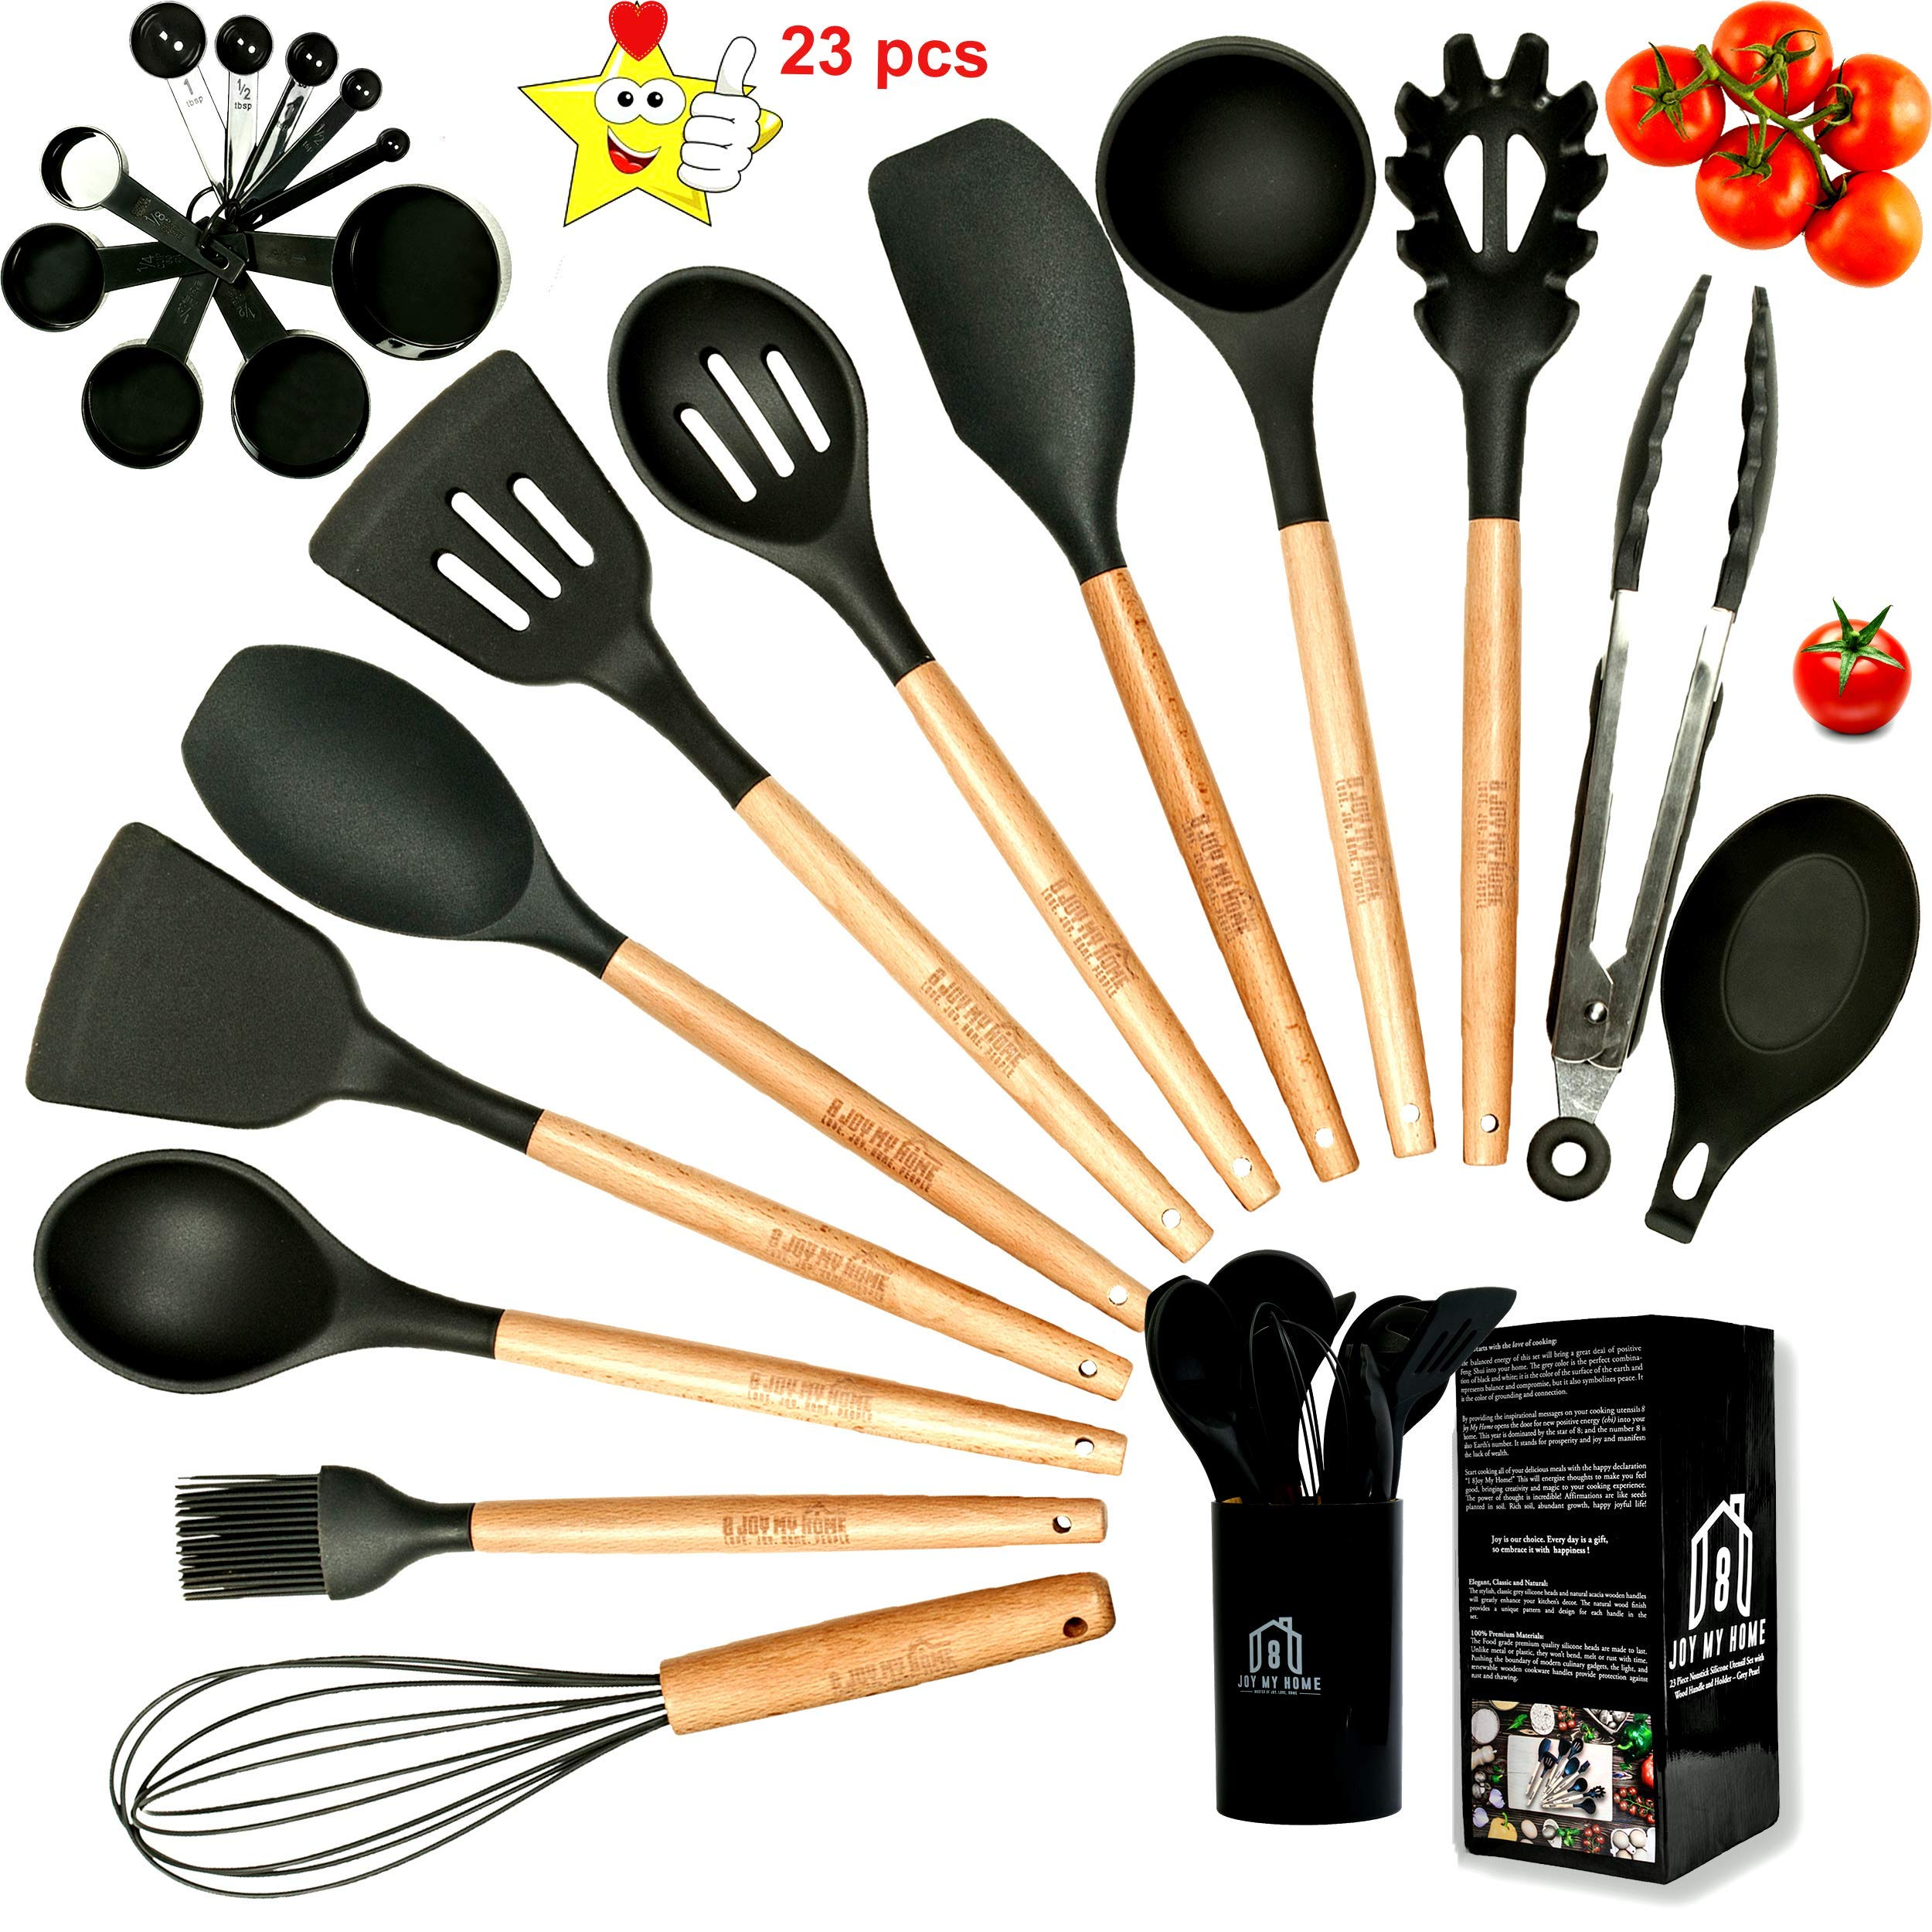 Silicone Cooking Utensils Kitchen Utensil Set with Natural Wooden Handles-Silicone Utensils-Cooking Tools-Rubber Spatulas with Spoon Rest and Holder for Nonstick Cookware-Best Housewarming Gift-Gray by 8joymyhome